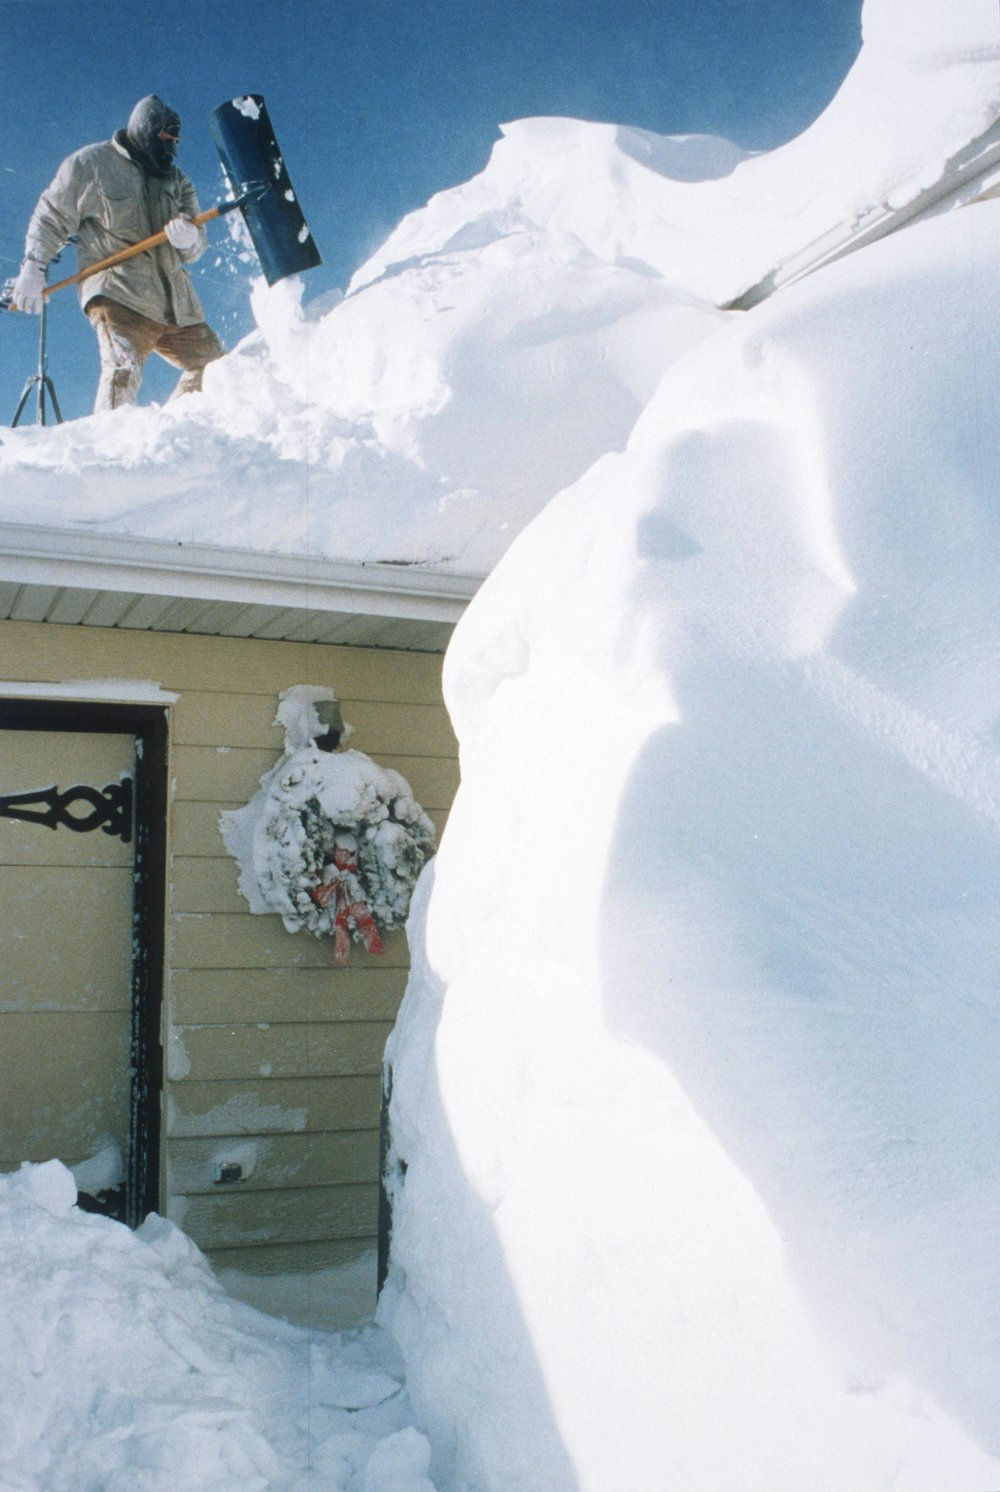 Jerry Walker shovels a mountain of snow from the top of his Dilworth home so the roof won't collapse under the weight. Forum News Service file photo